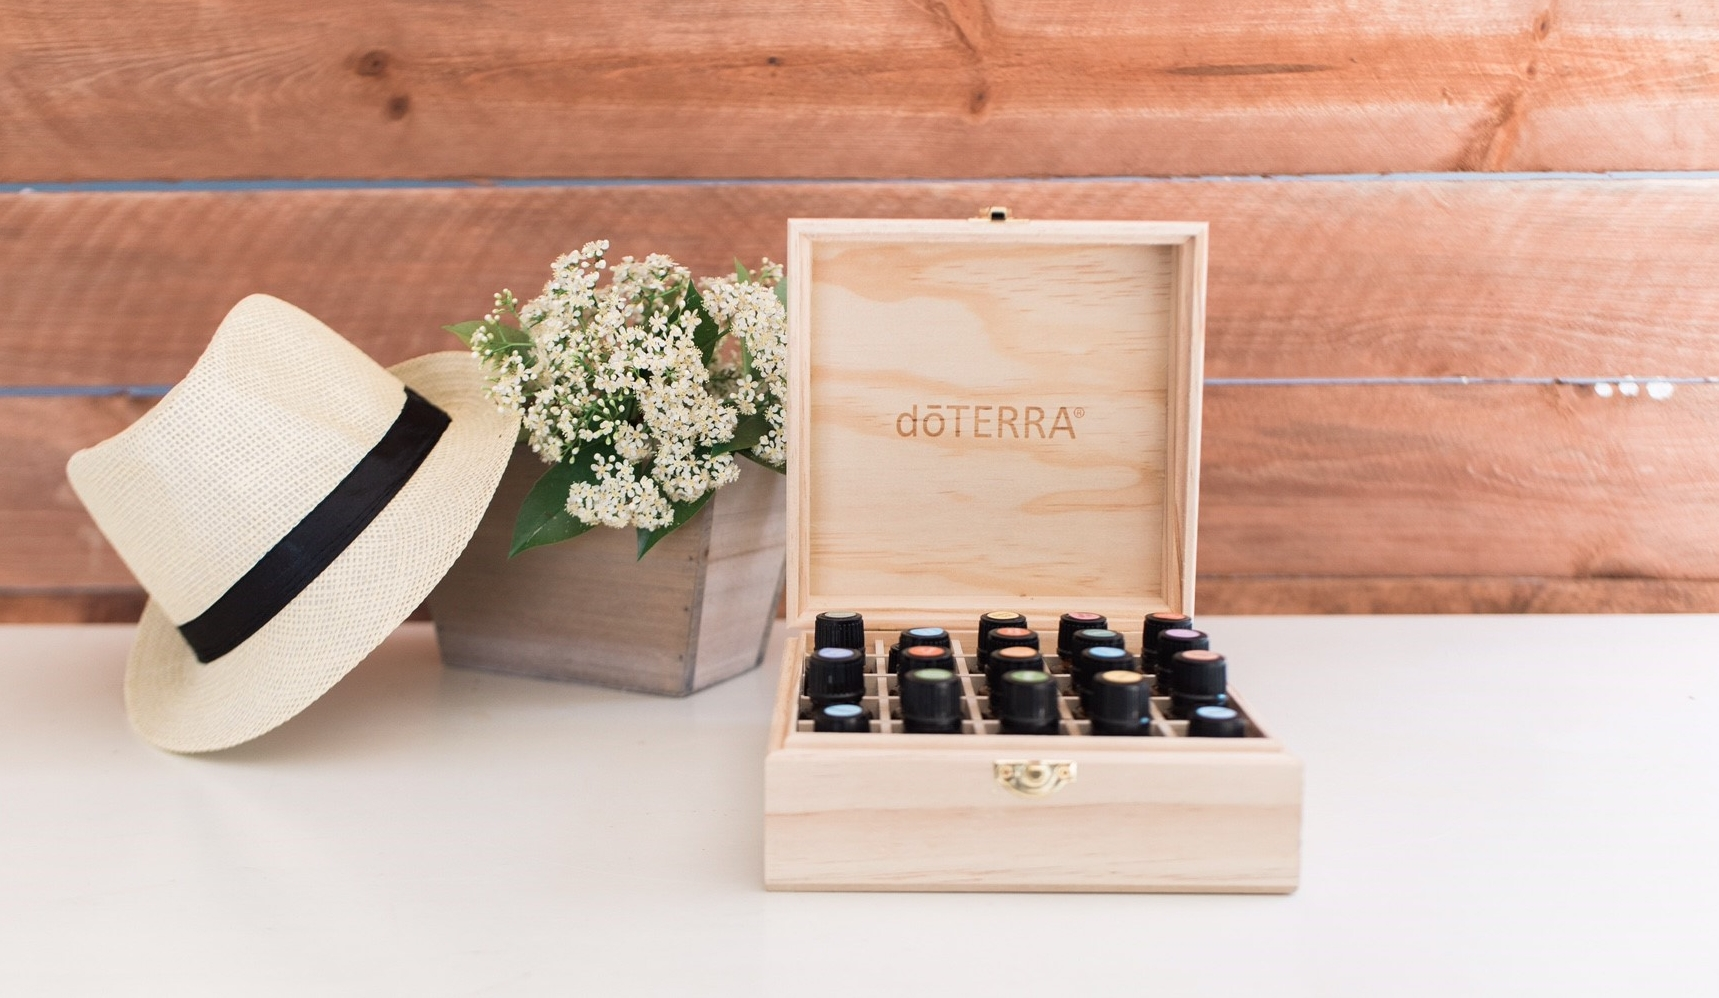 doterra website image 1.jpg